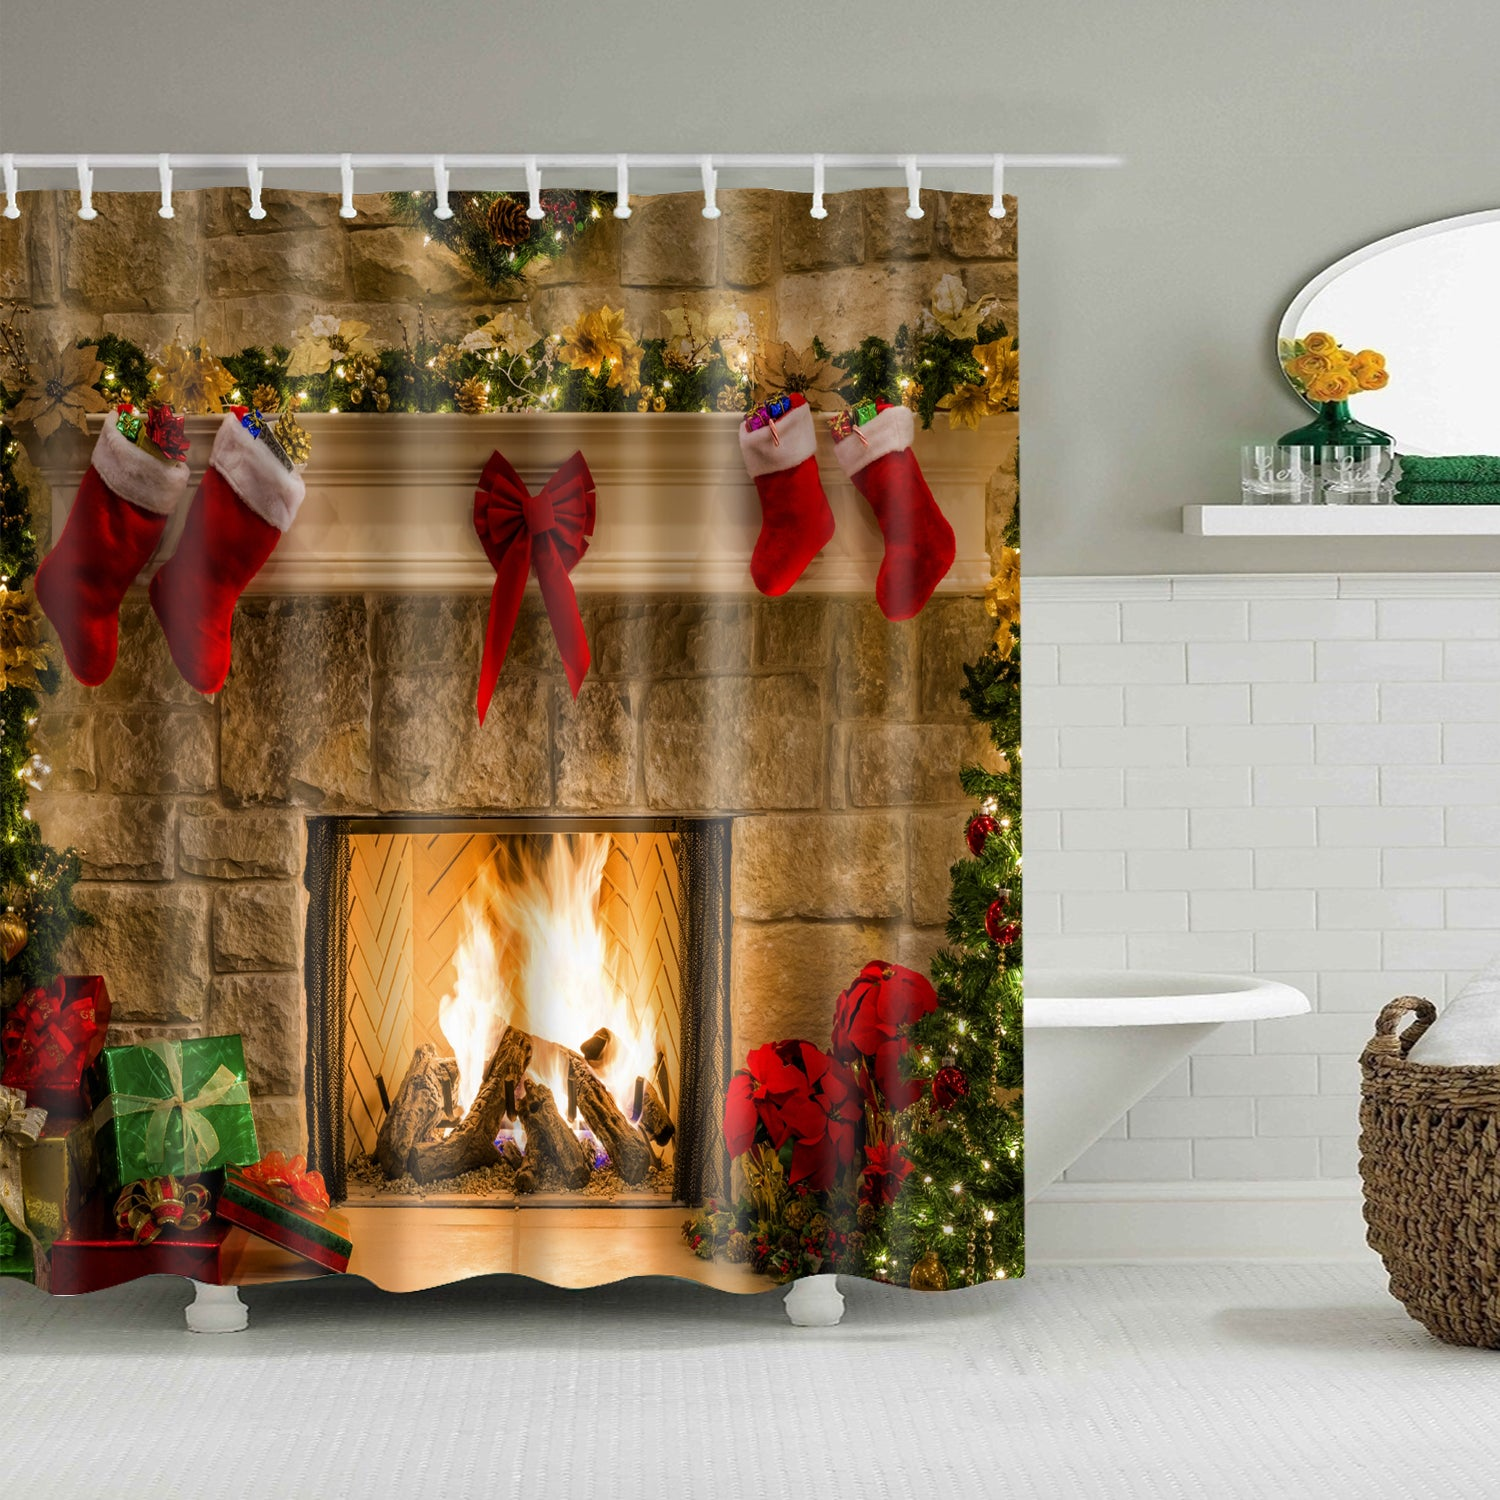 Hanging Christmas Socks with Boiler Shower Curtain